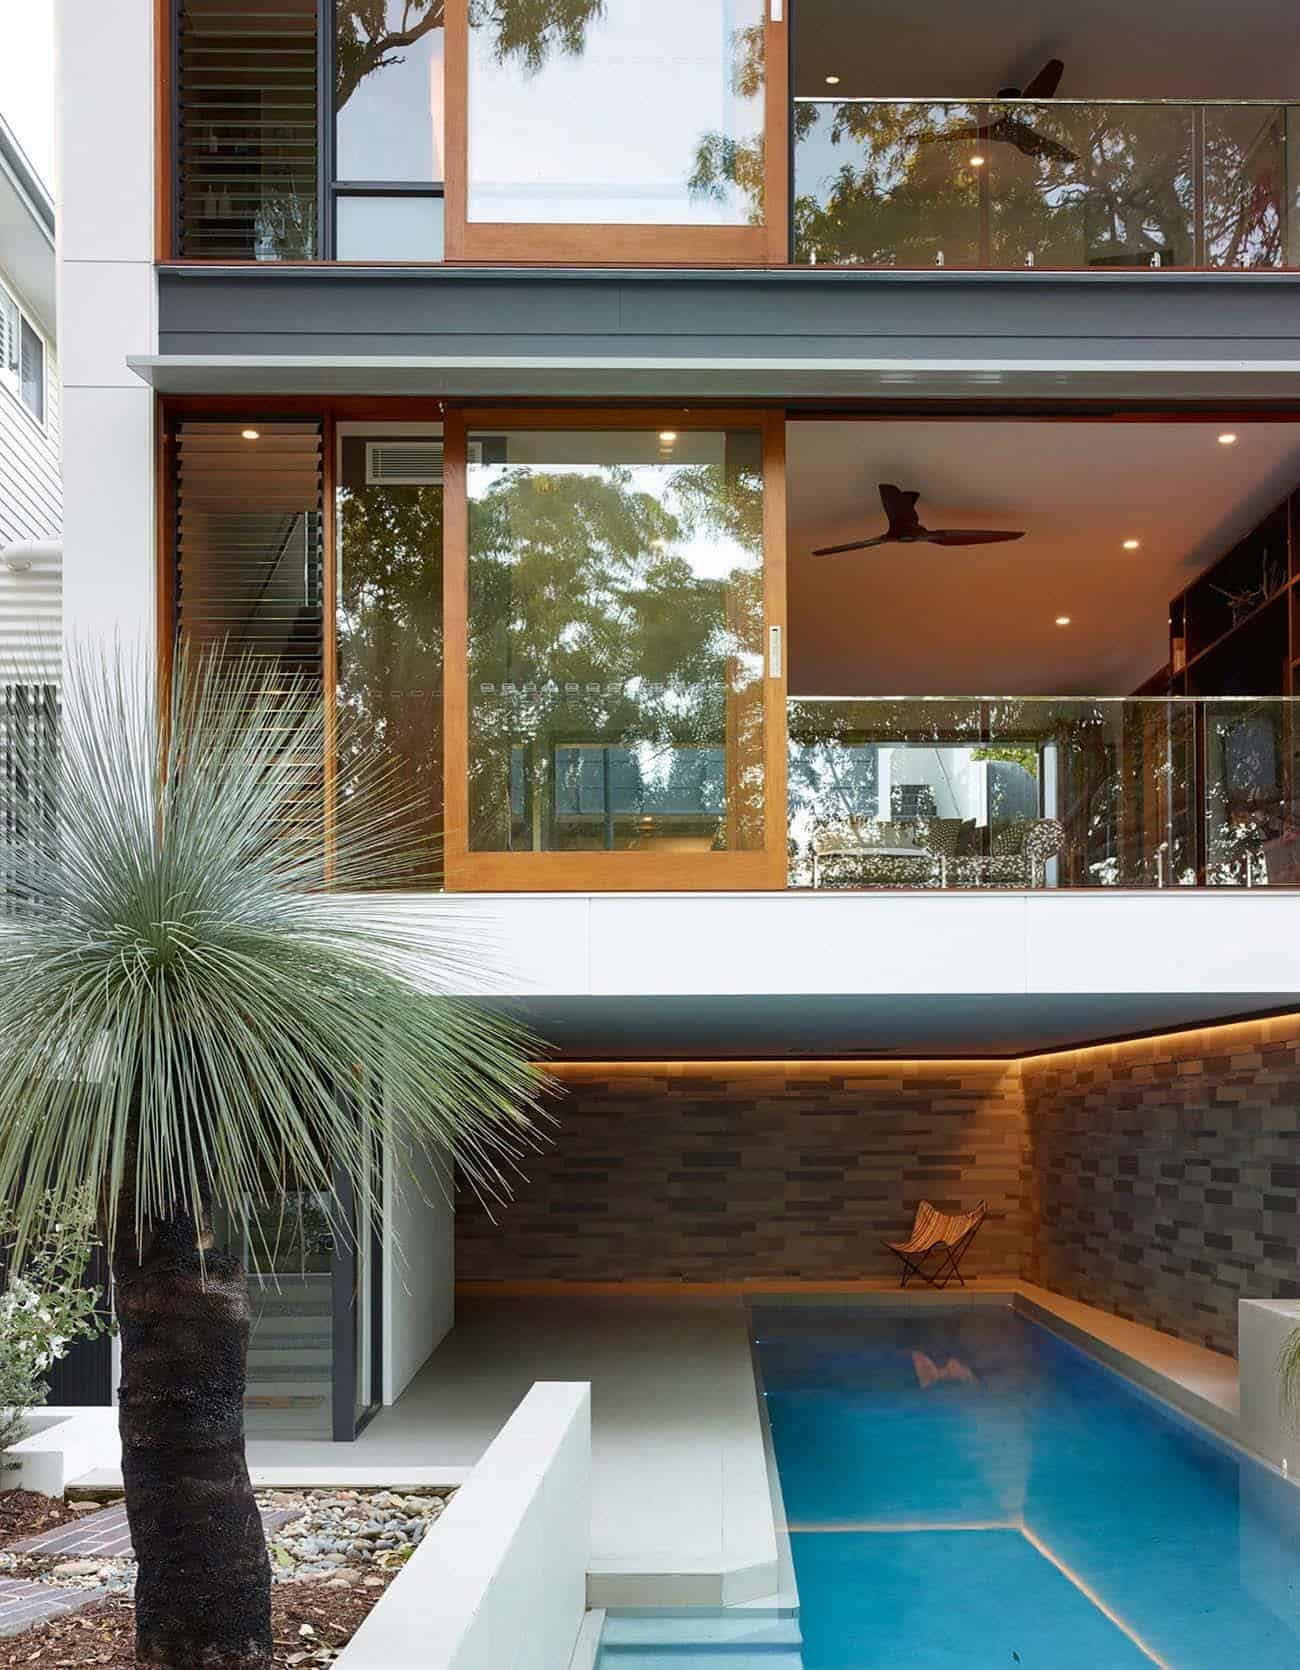 Architecture-Contemporary-Home-ONeill Architecture-02-1 Kindesign